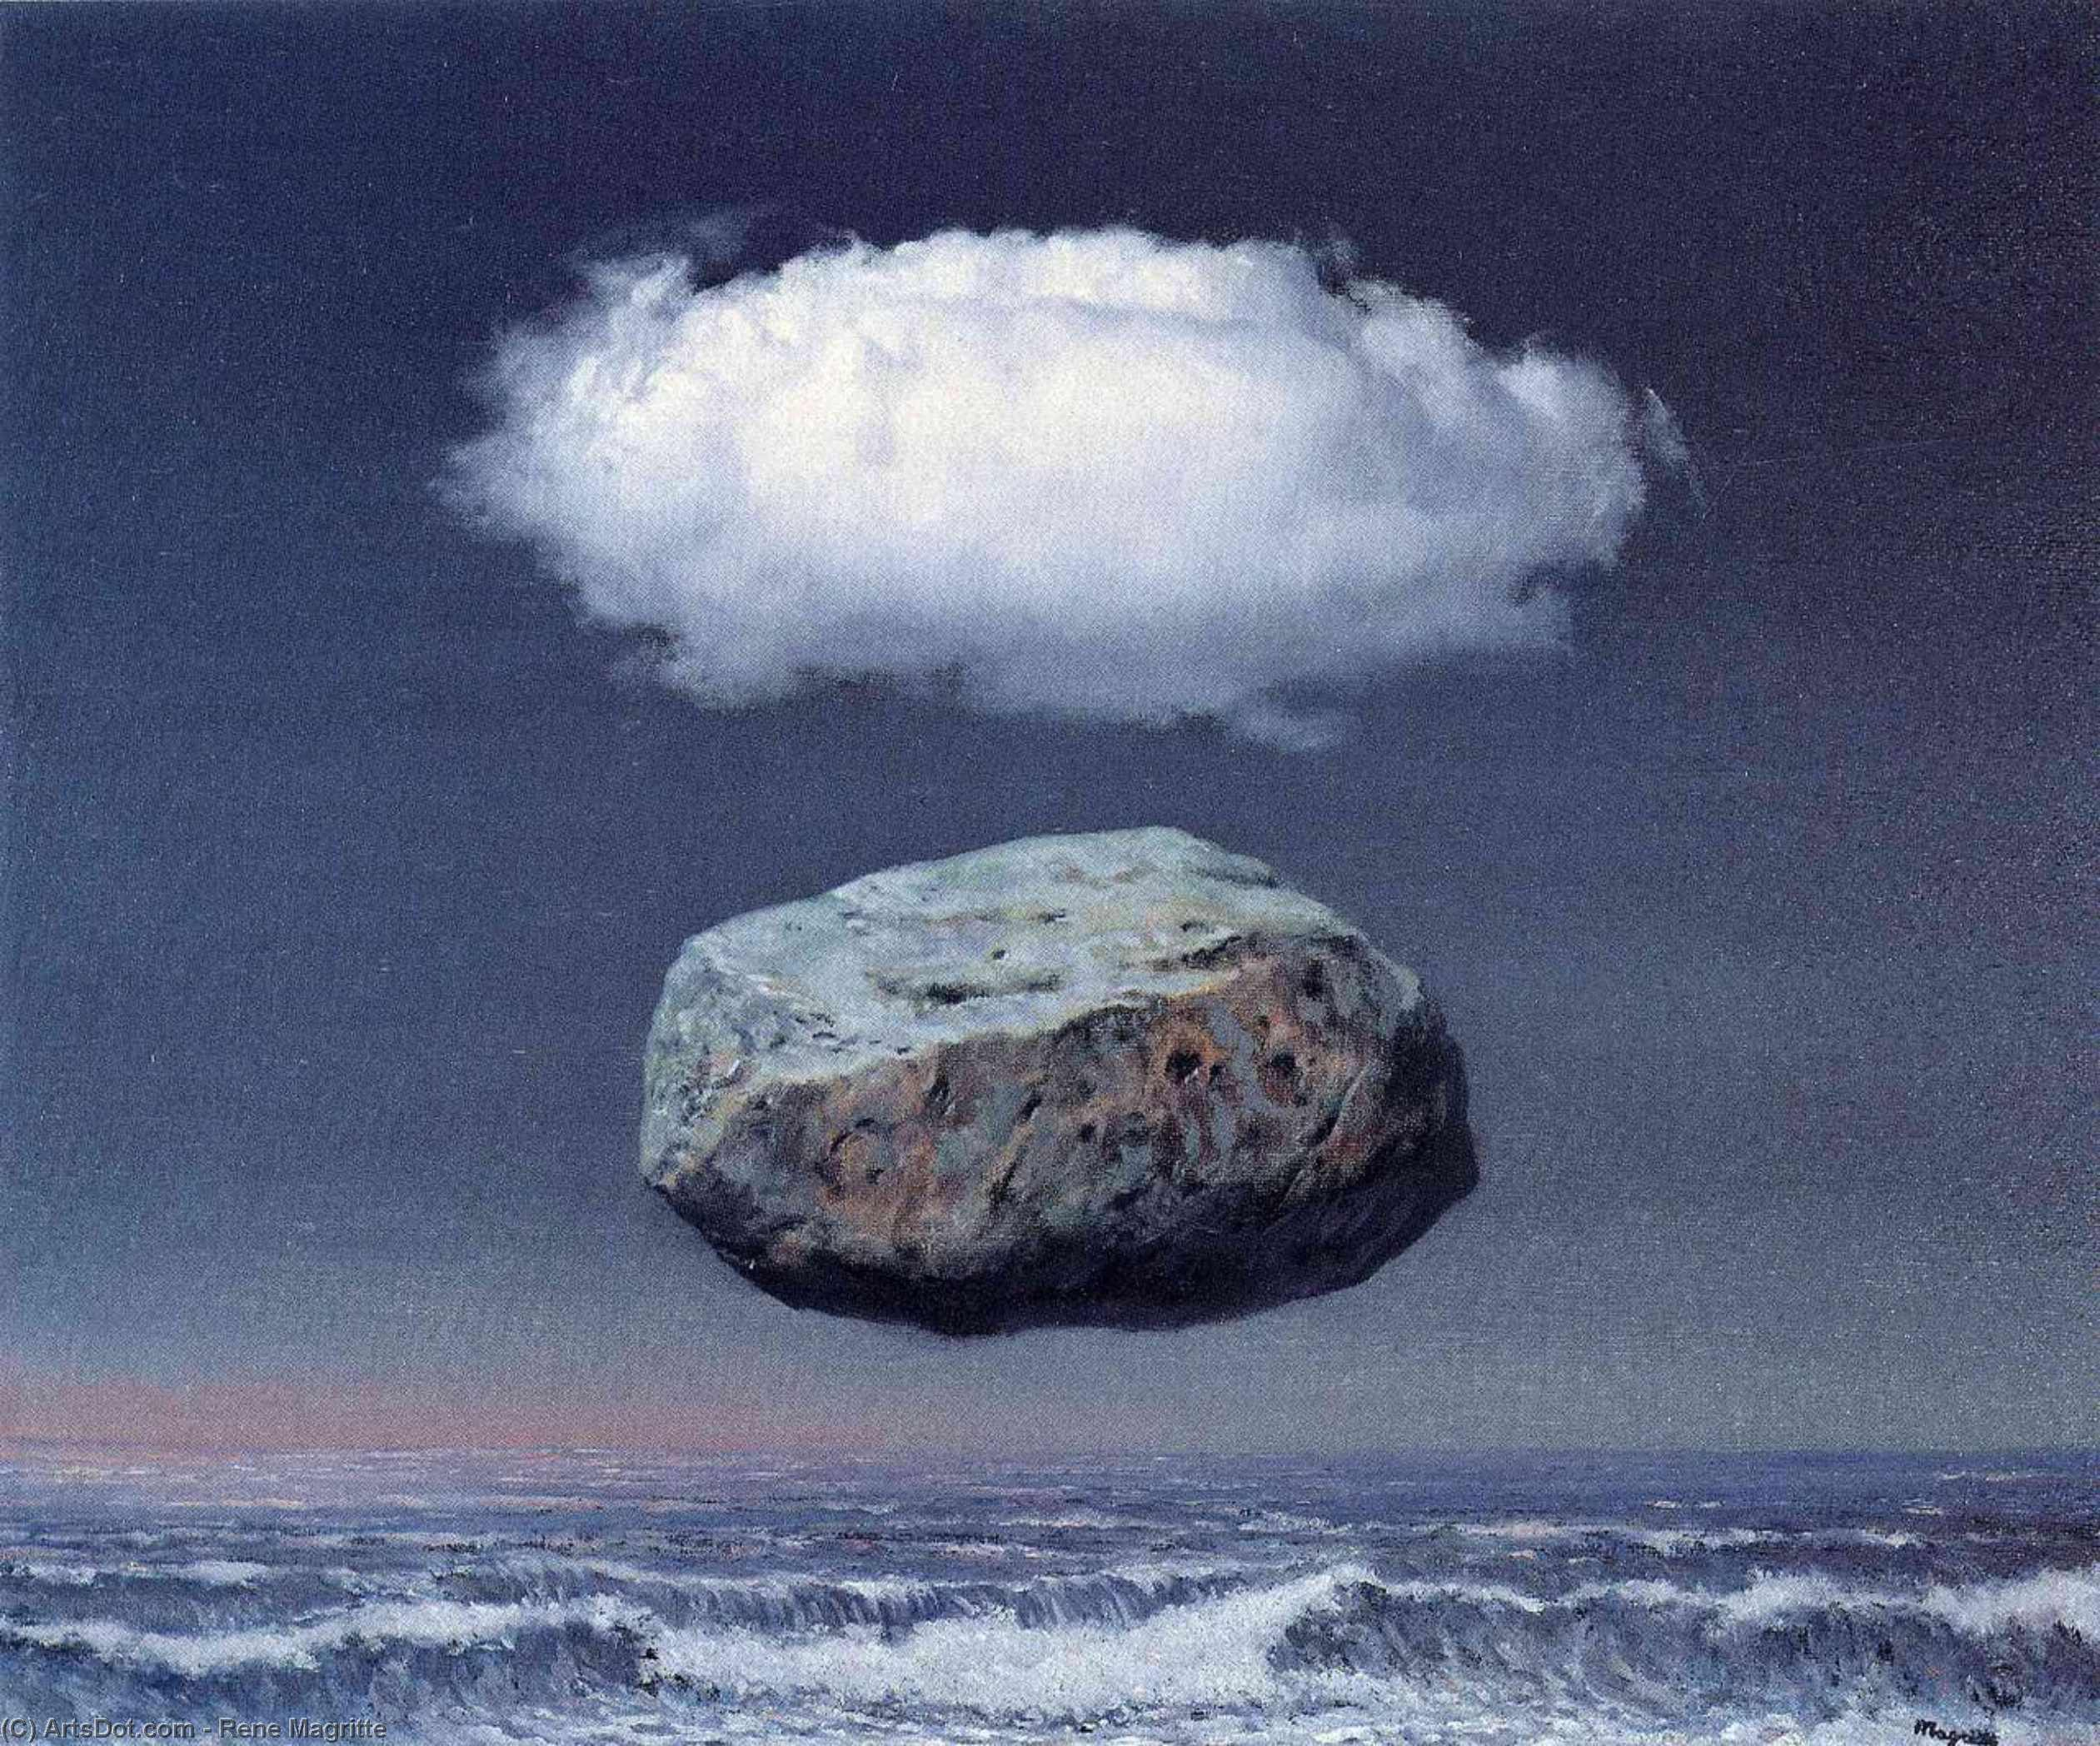 Clear ideas, 1958 by Rene Magritte (1898-1967, Belgium)